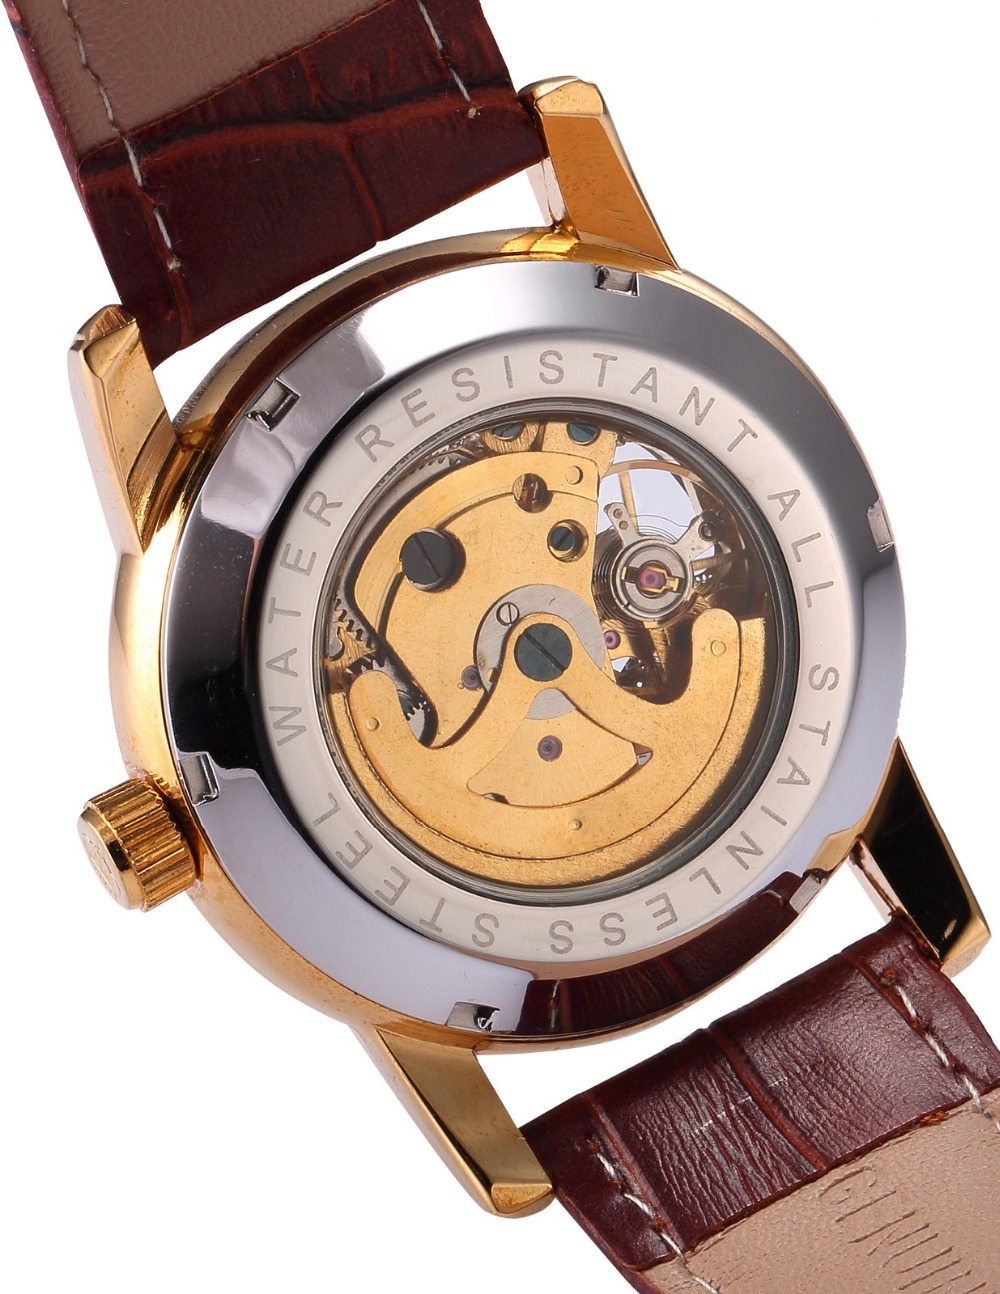 Heren Horloges Luxe Gouden Skelet Mechanisch Steampunk Heren Klok - Herenhorloges - Foto 5